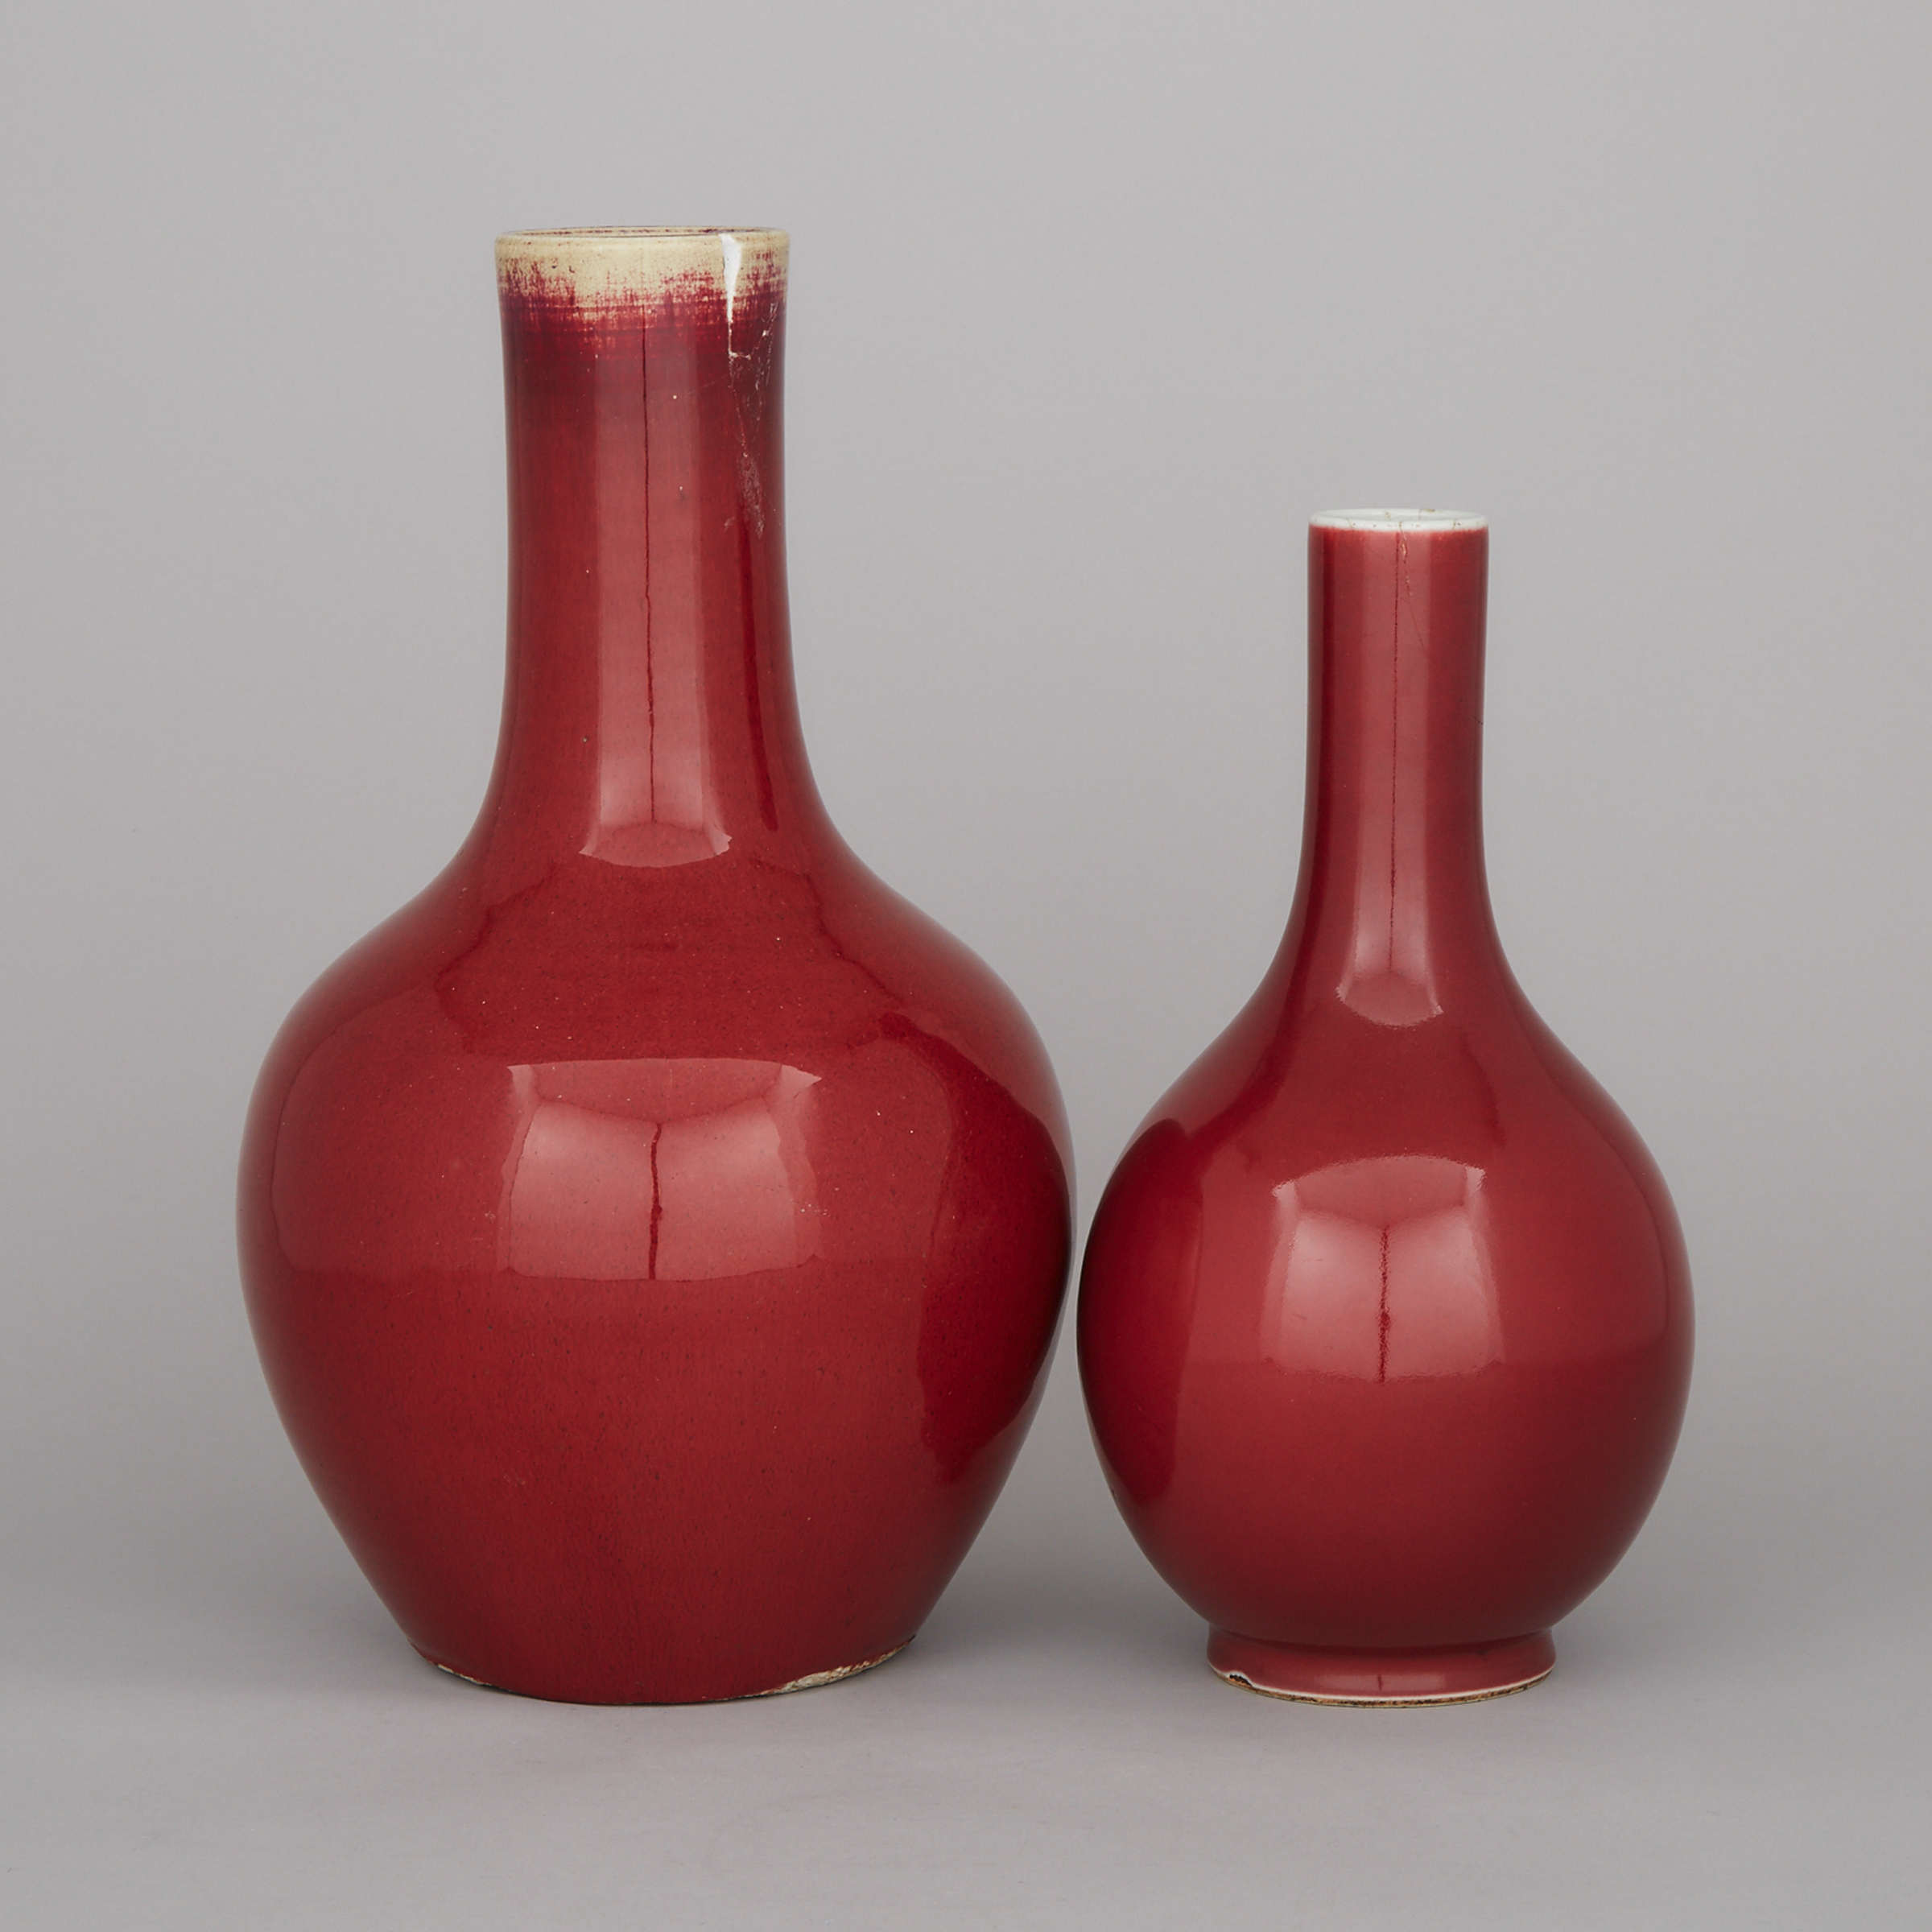 Two Red Glazed Vases